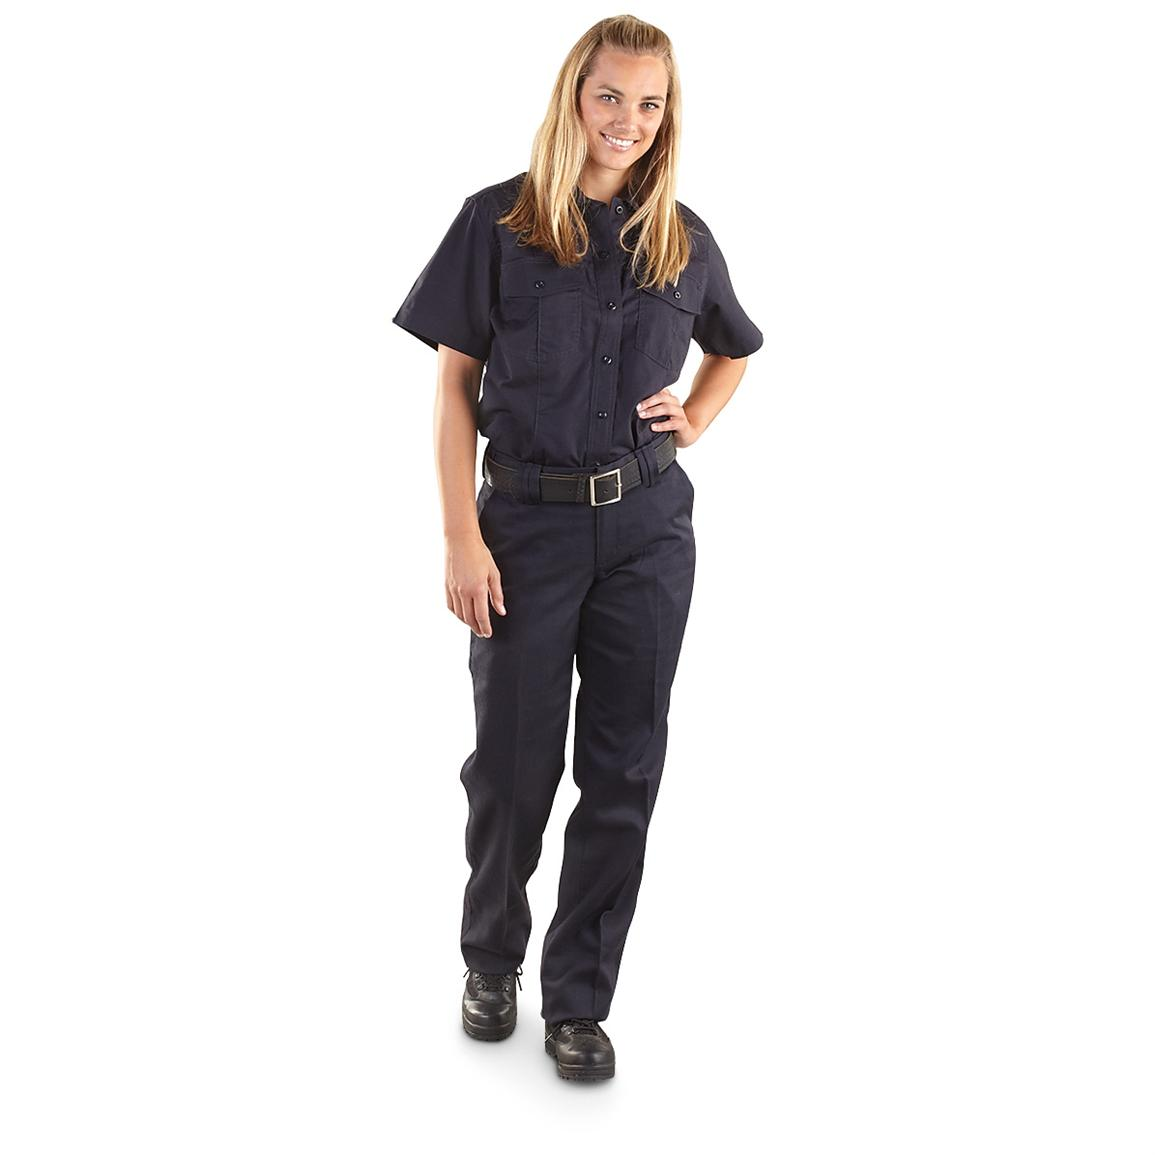 Women's 5.11 Tactical® FR-x3 Short-sleeved Fire-resistant Station Shirt